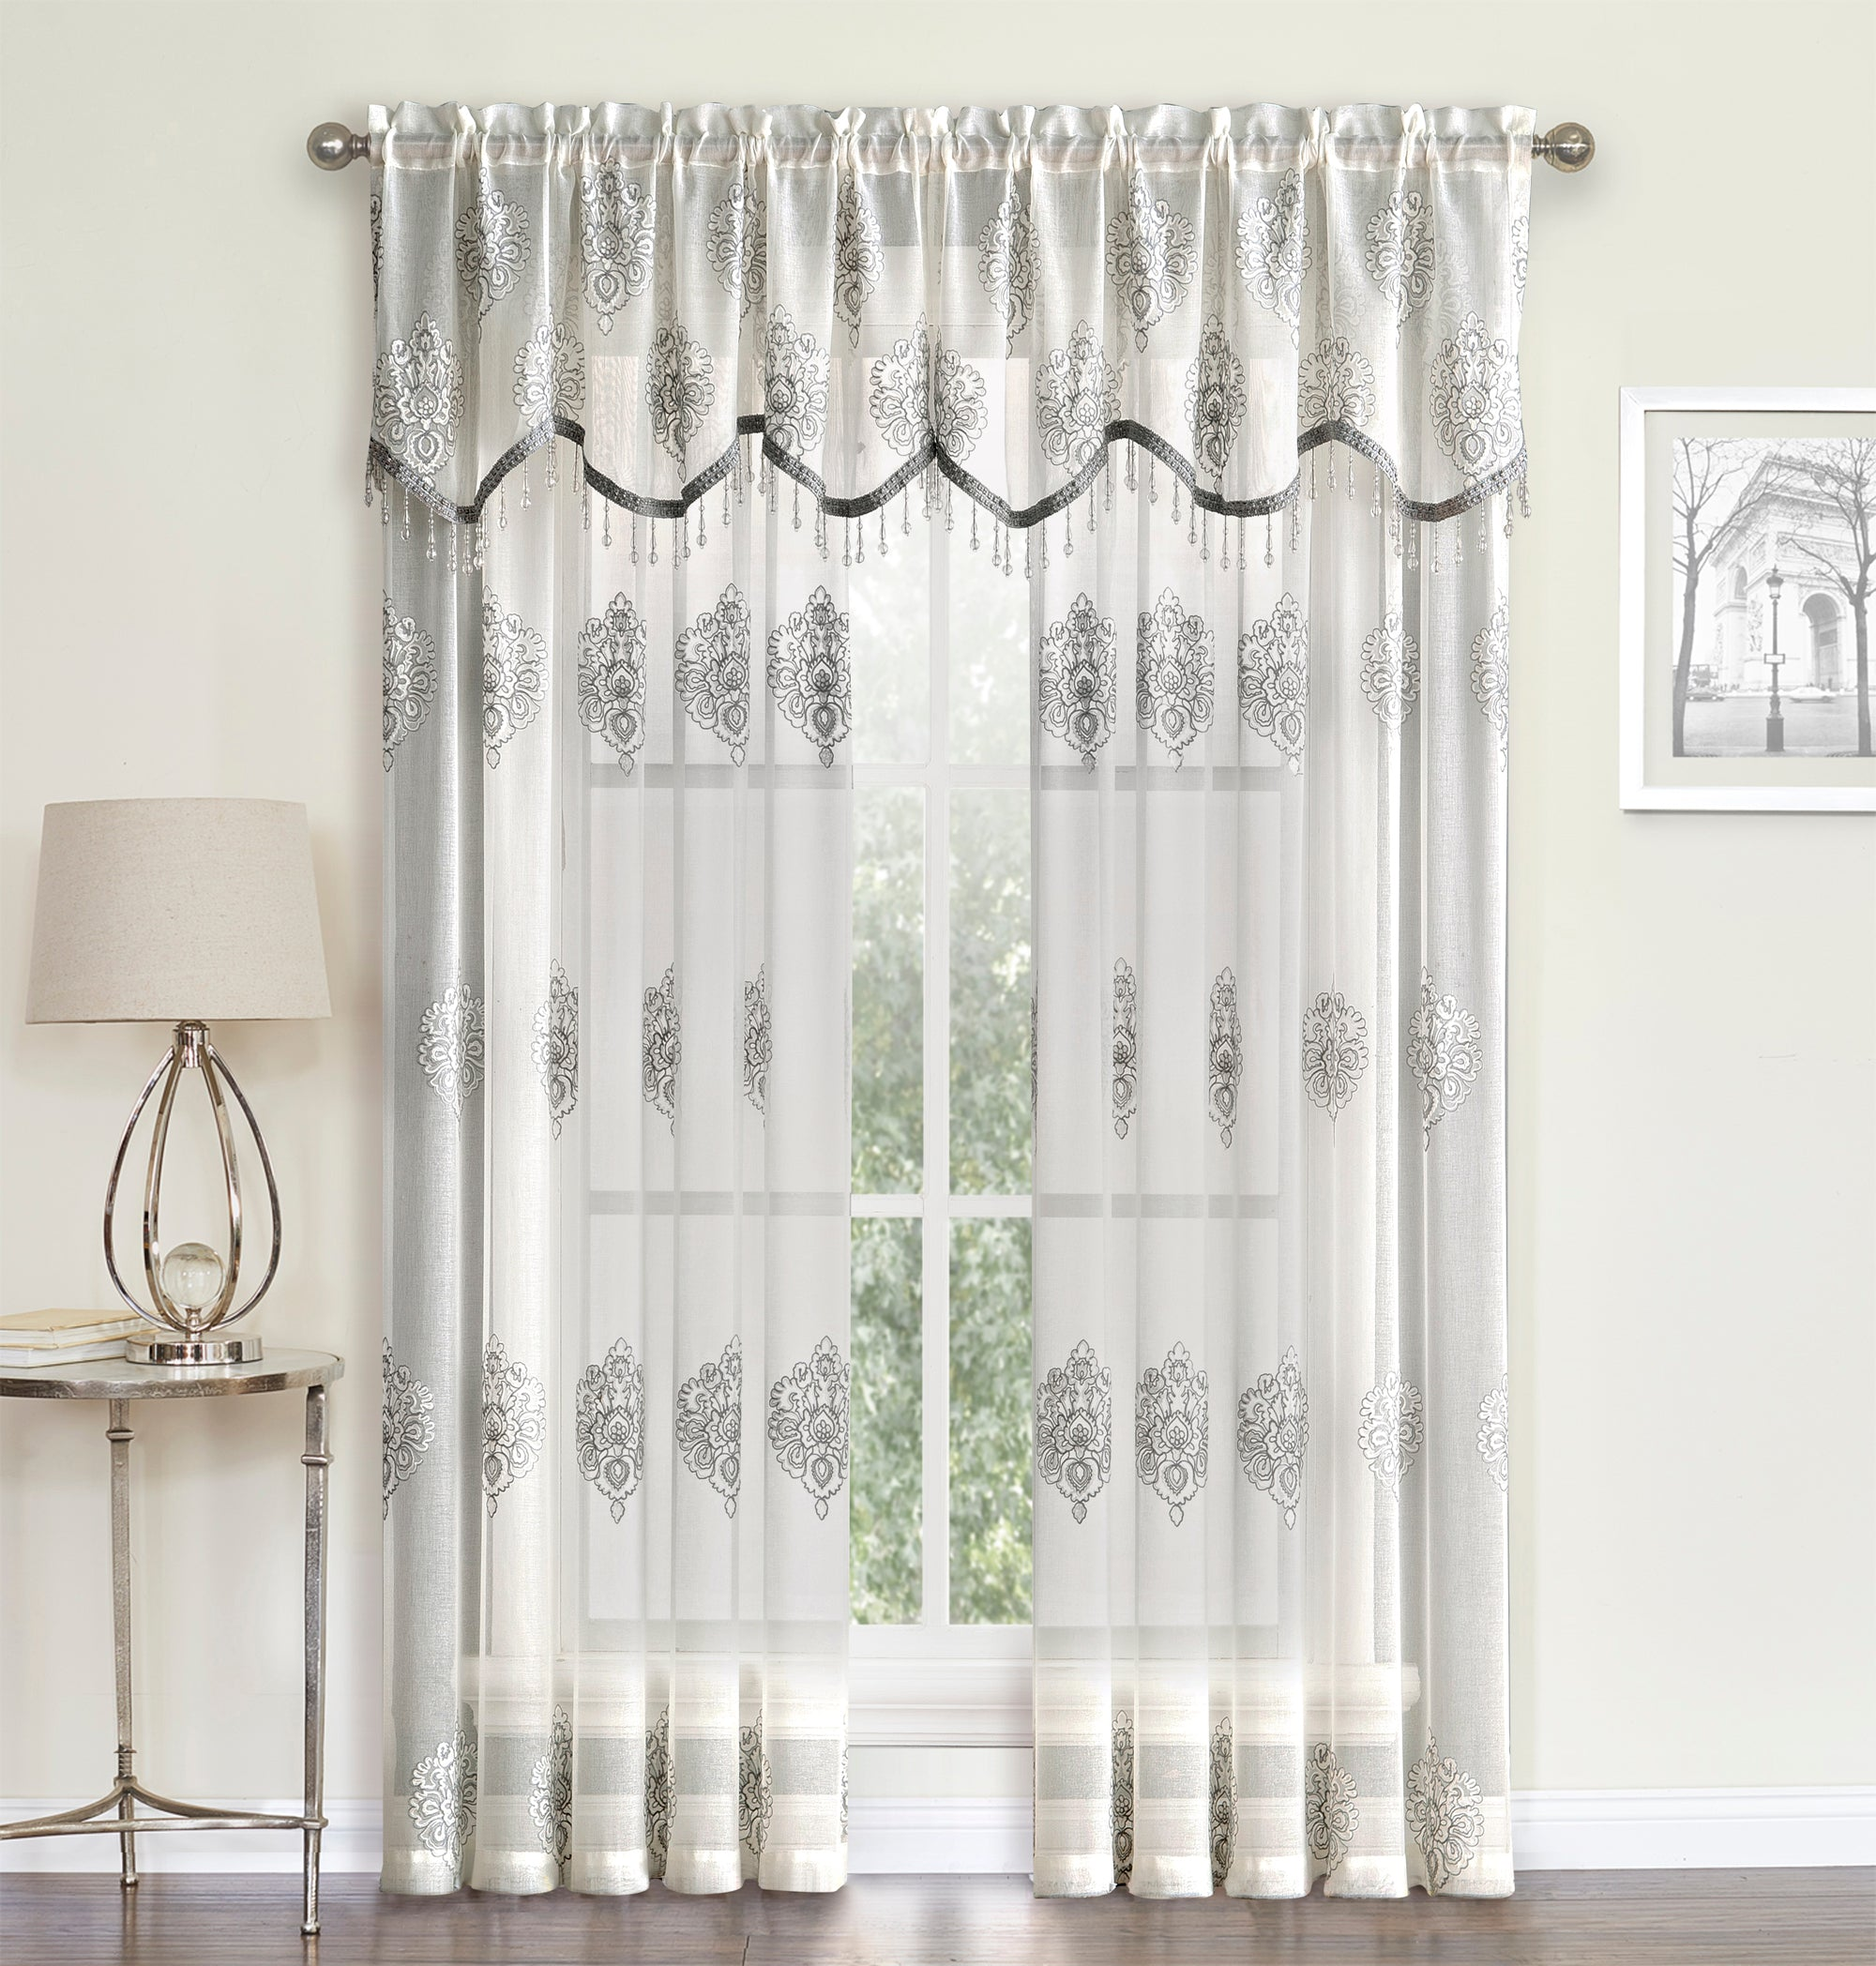 window bathroom valances for ideas of swag windows sheer treatments curtains with valance